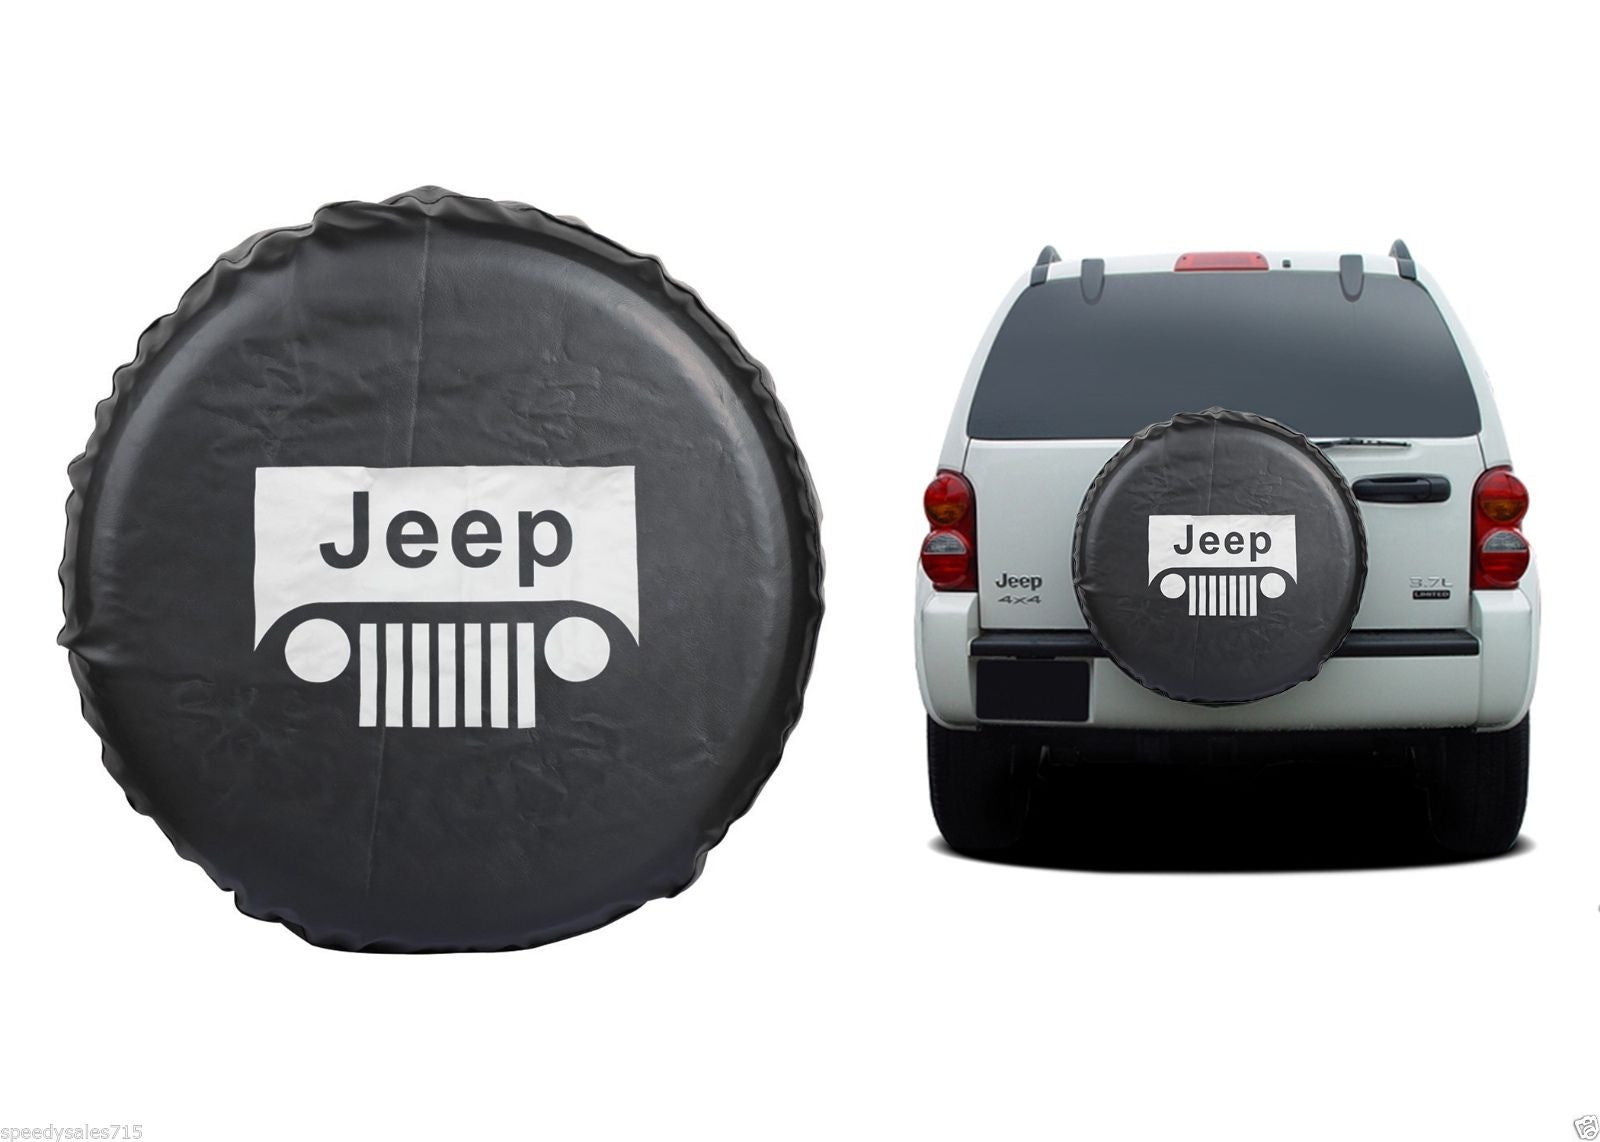 spare b covers crocheted flickr cover tire photos by jeep zombieite